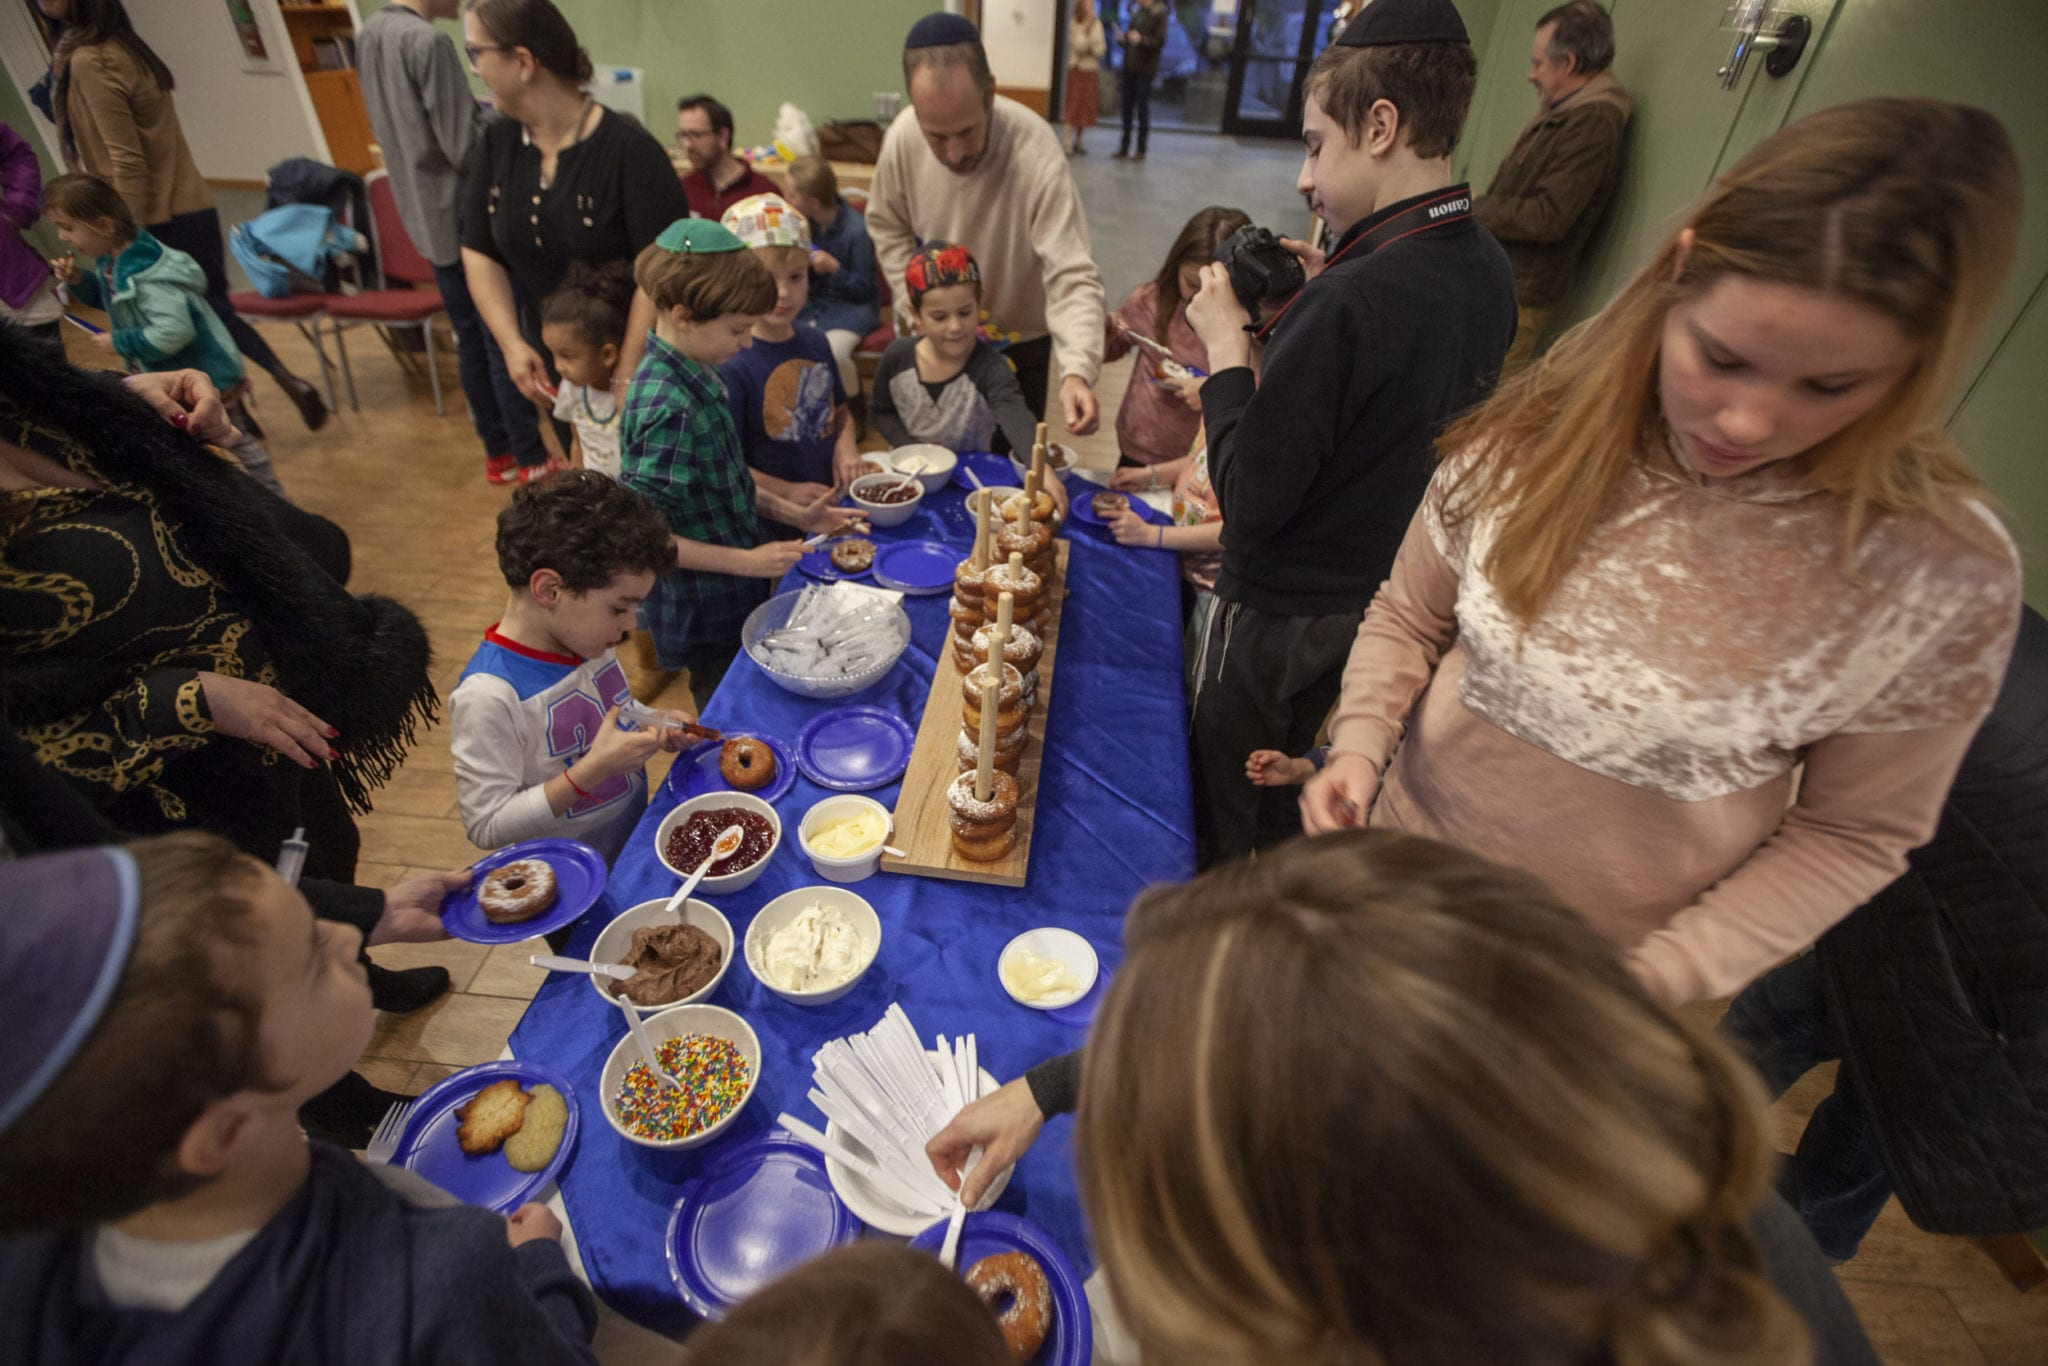 Families gather around to put jelly and toppings on powdered doughnuts during the Chabad Jewish Center's Hanukkah festival for children of all ages. Photo by Jacob Granneman